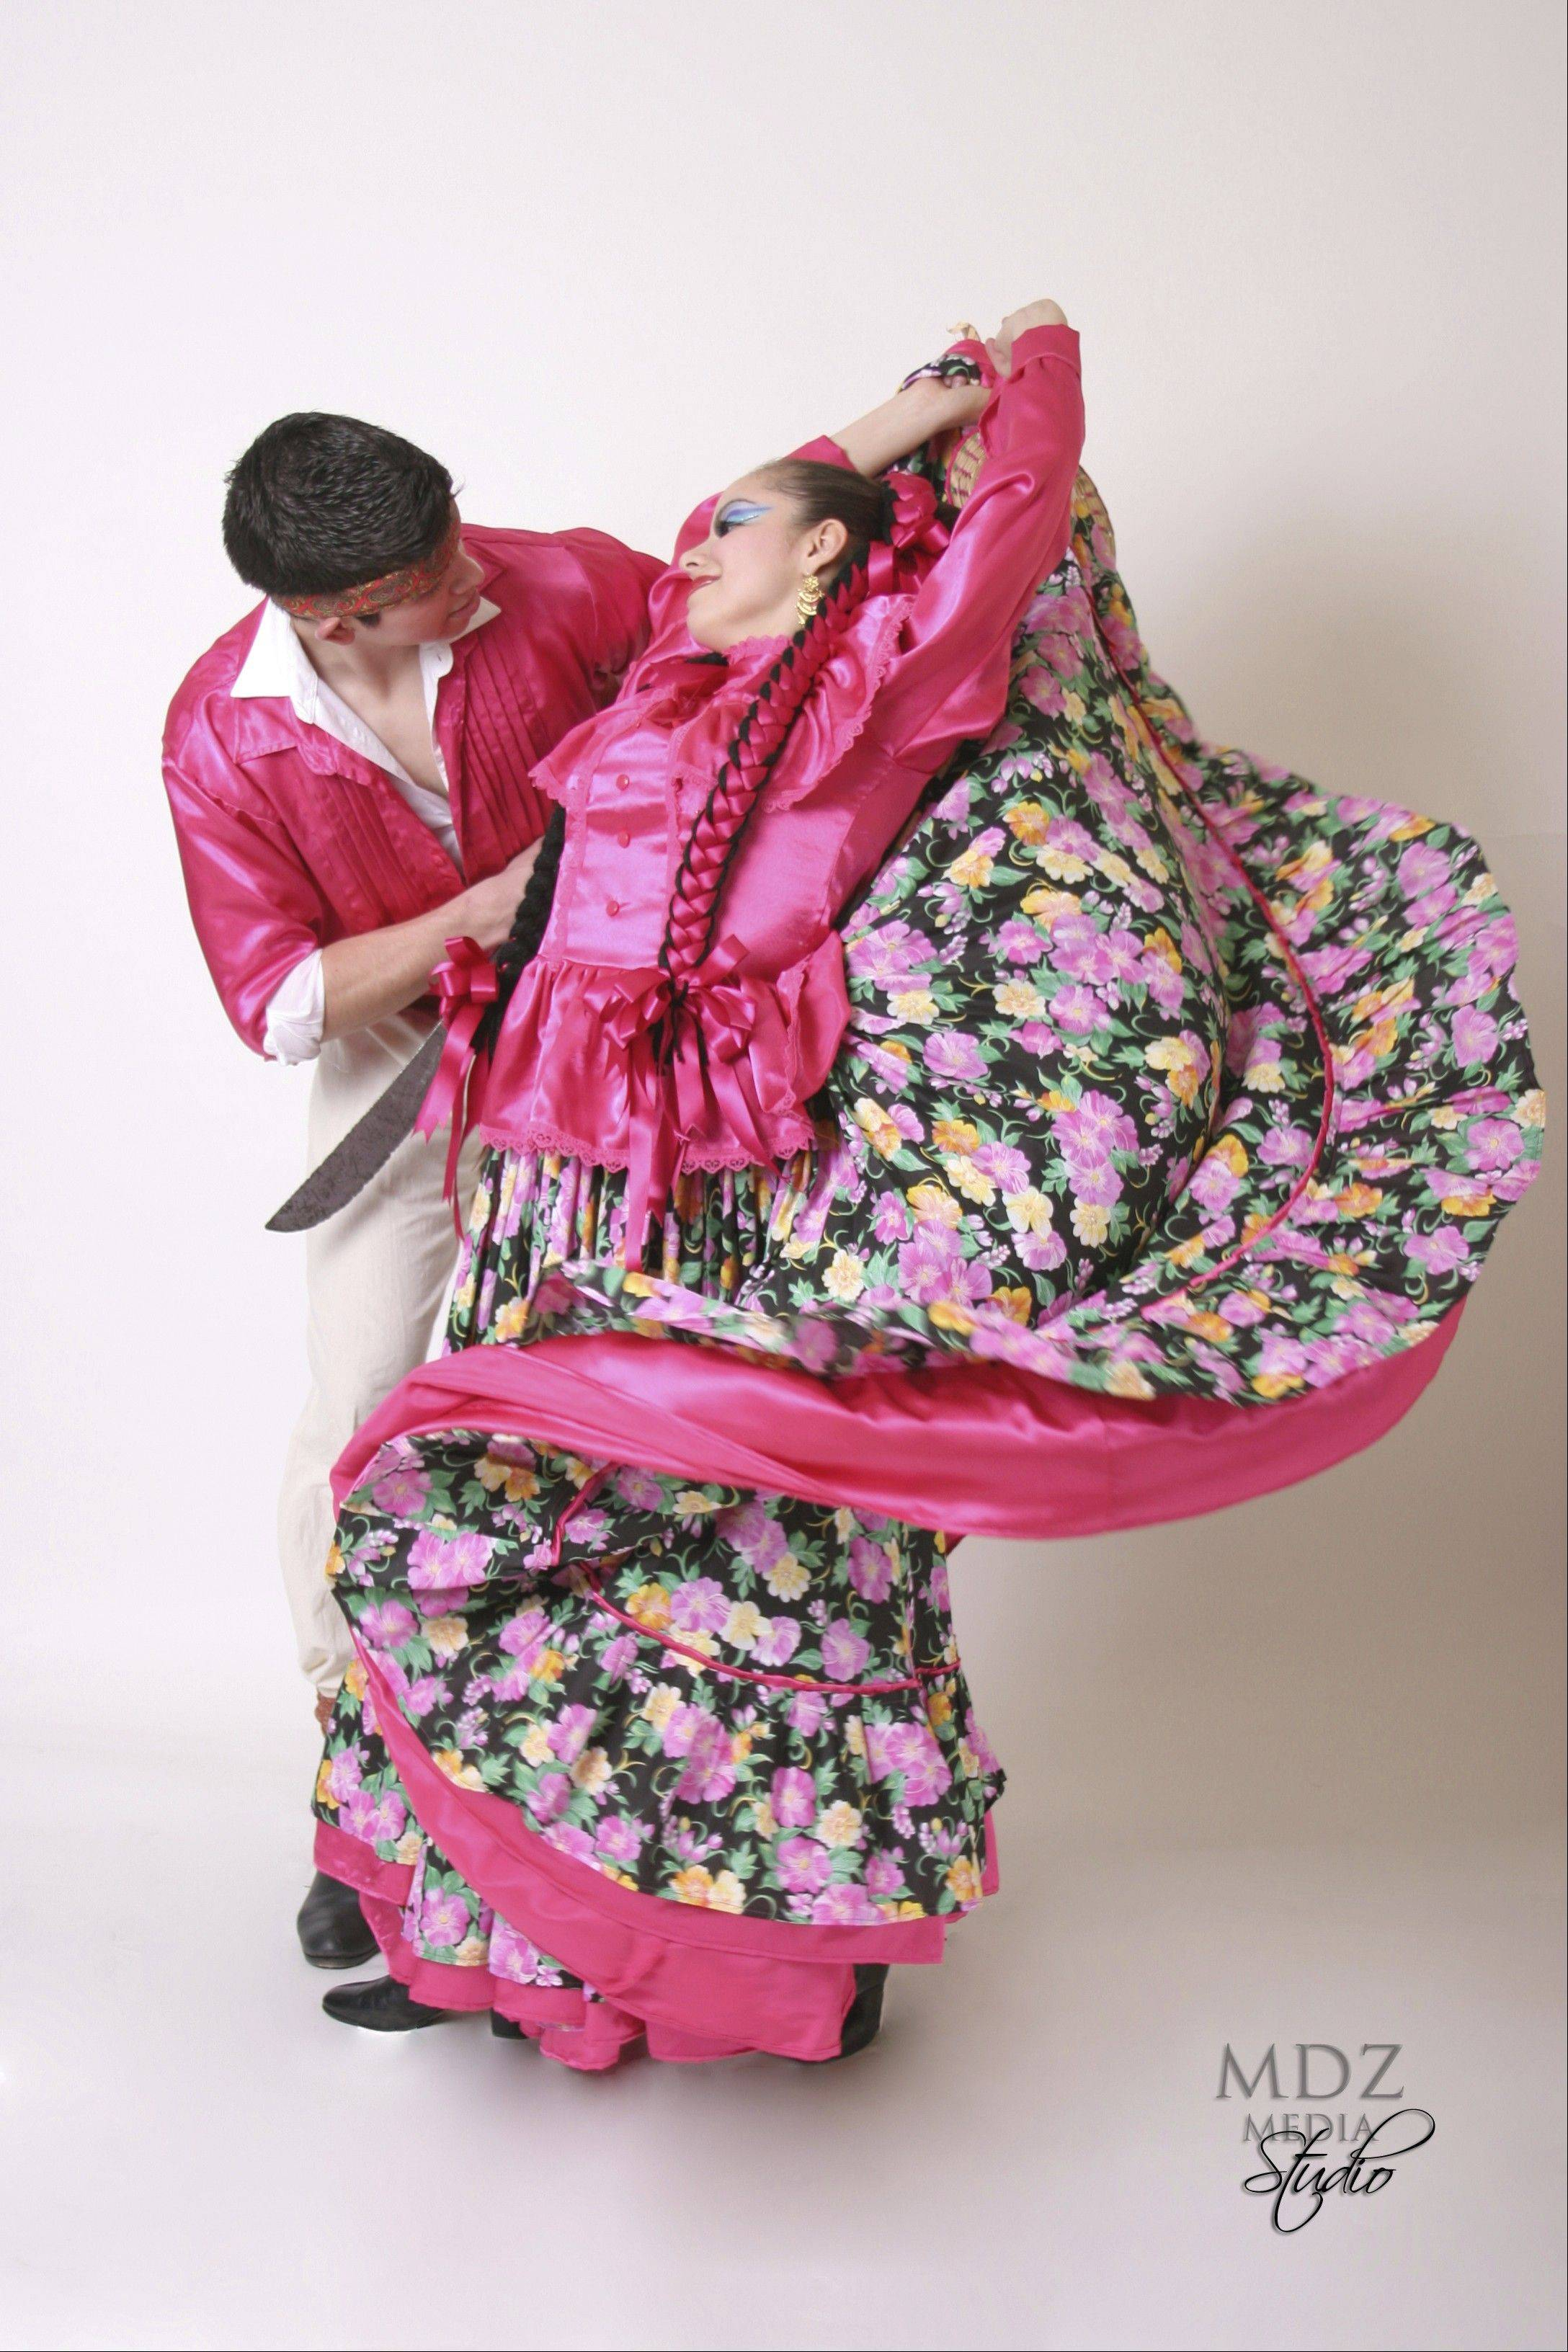 Ballet Folklorico Quetzalcoatl will perform at the Paramount Theatre in Aurora on Friday, Oct. 19.